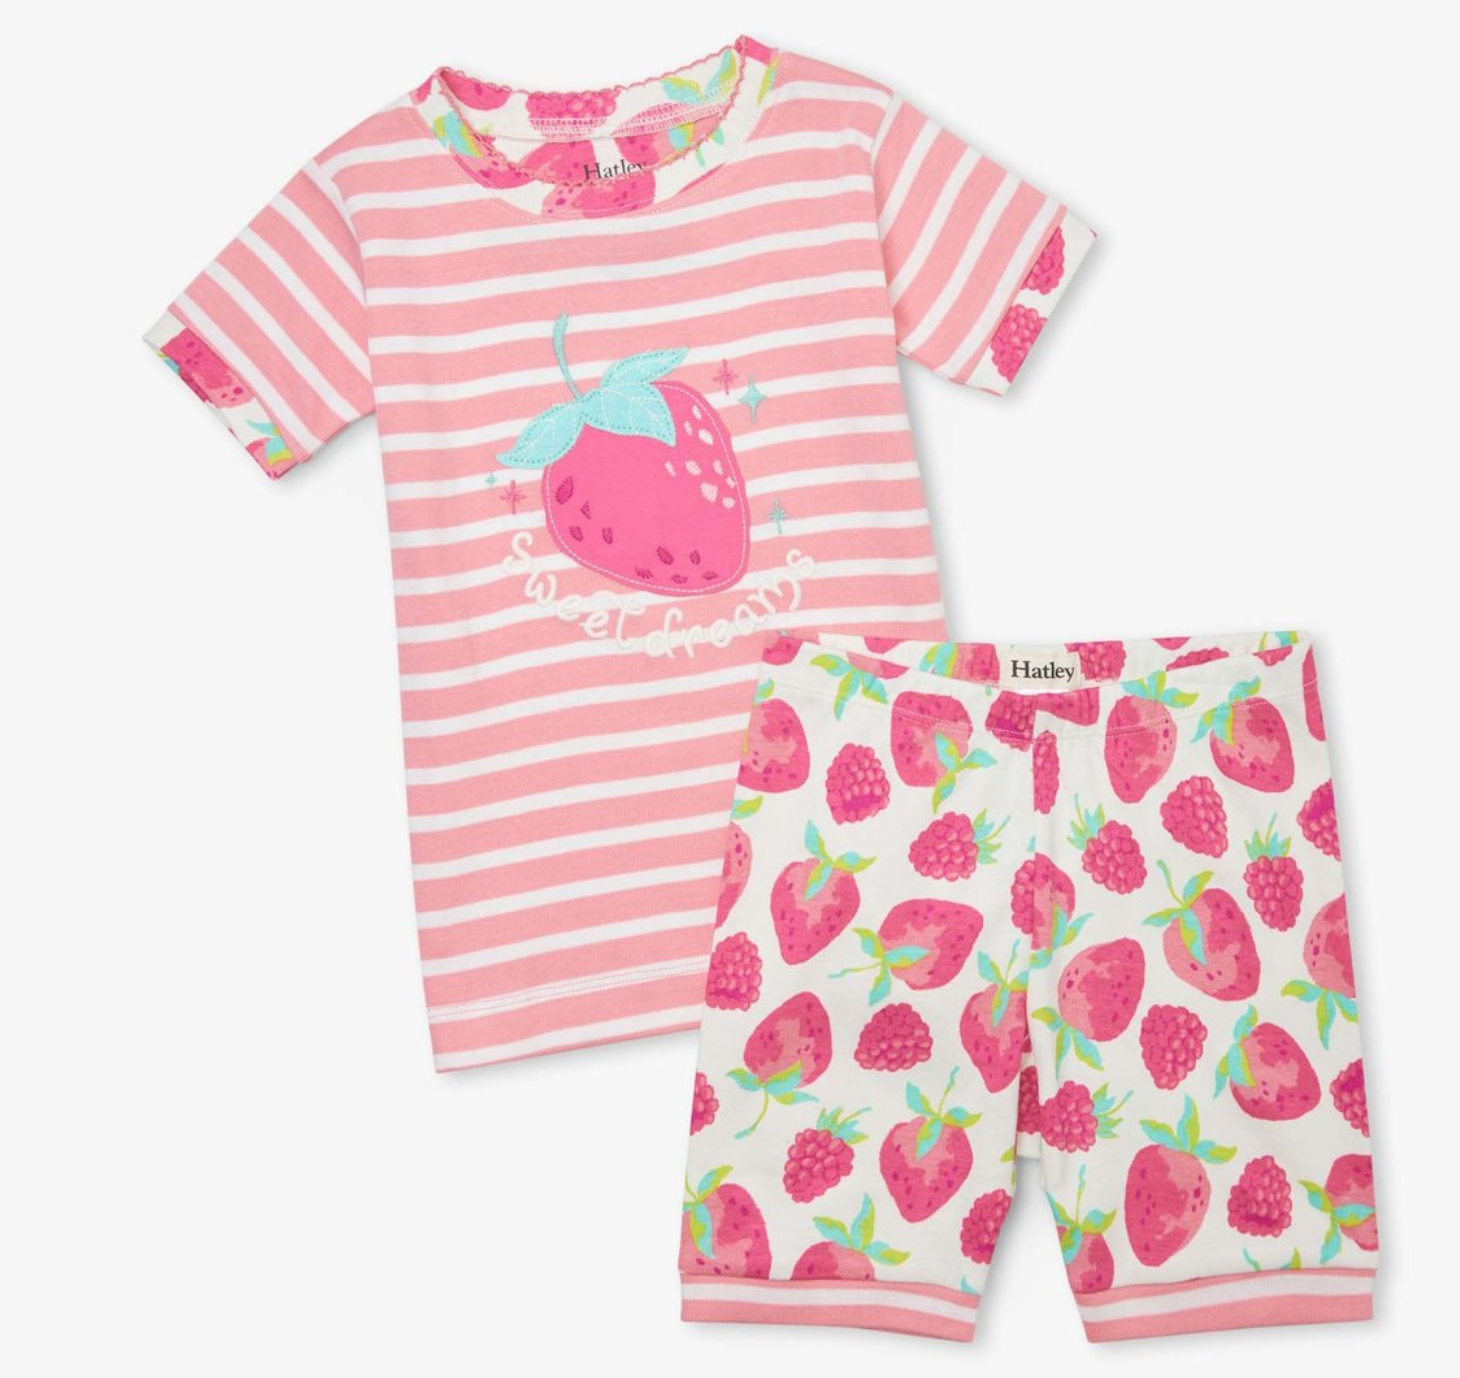 Delicious Berries Organic short pajama set